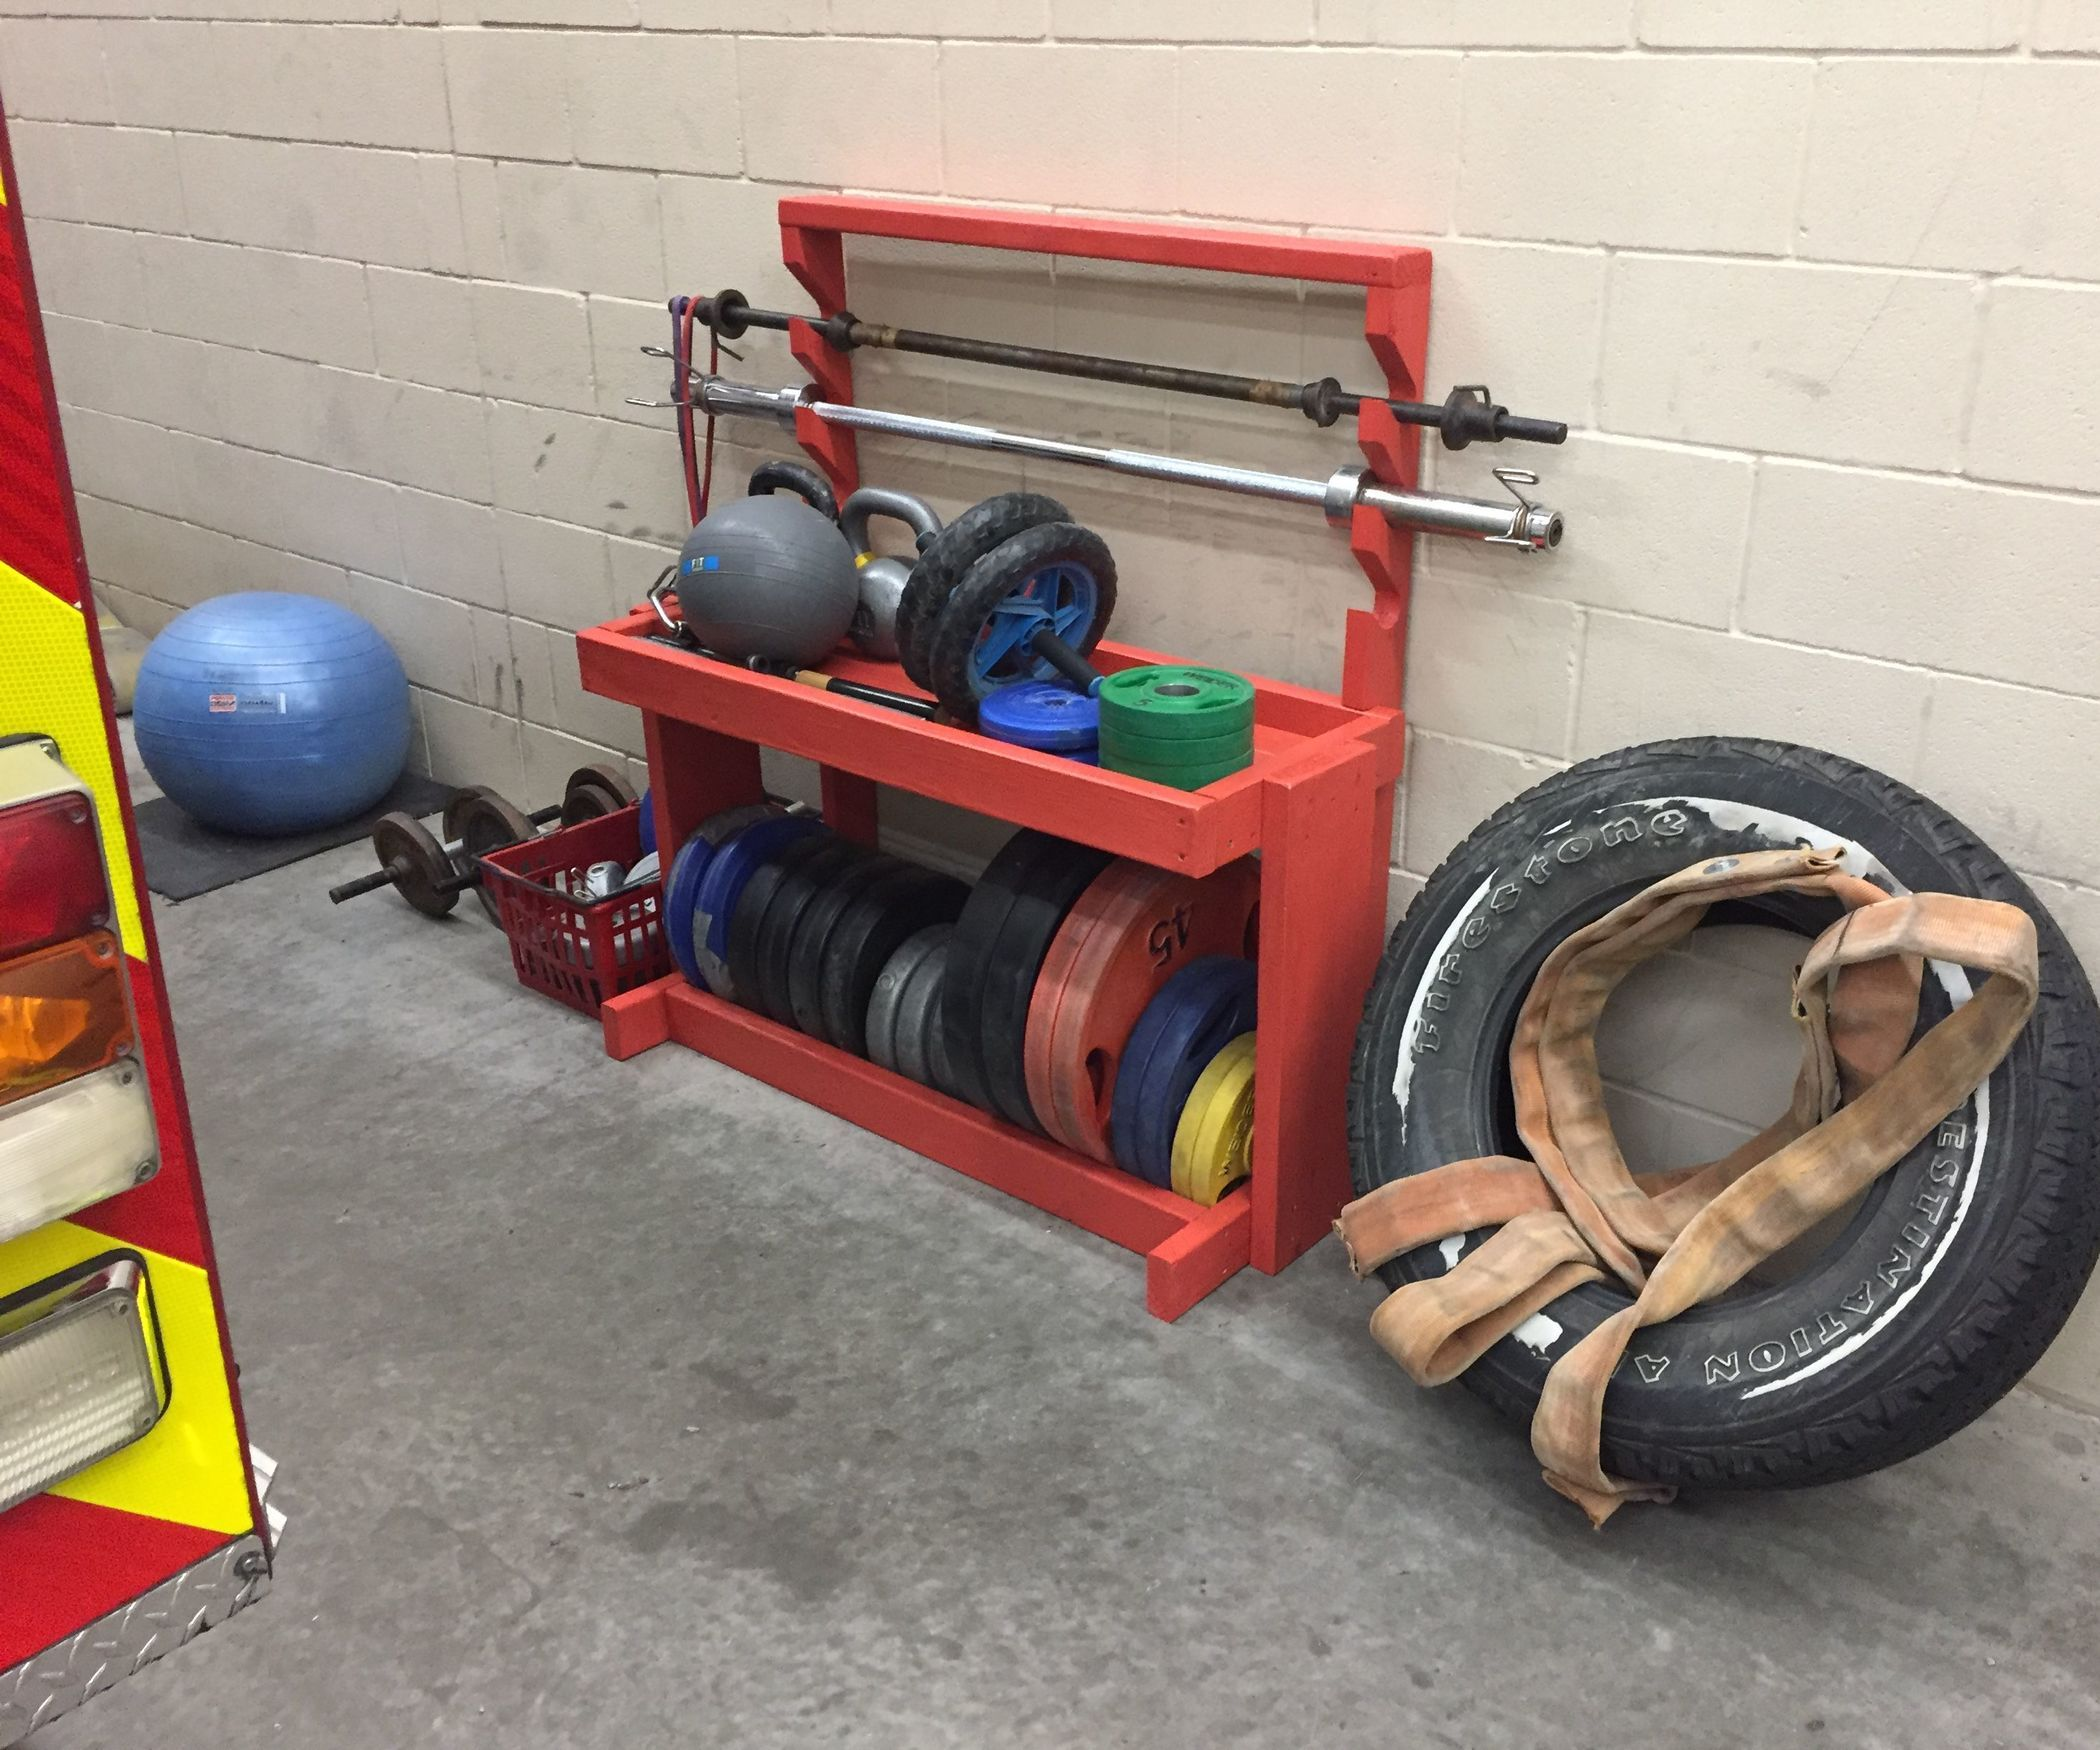 Diy weight and barbell storage rack diy and crafts home gym